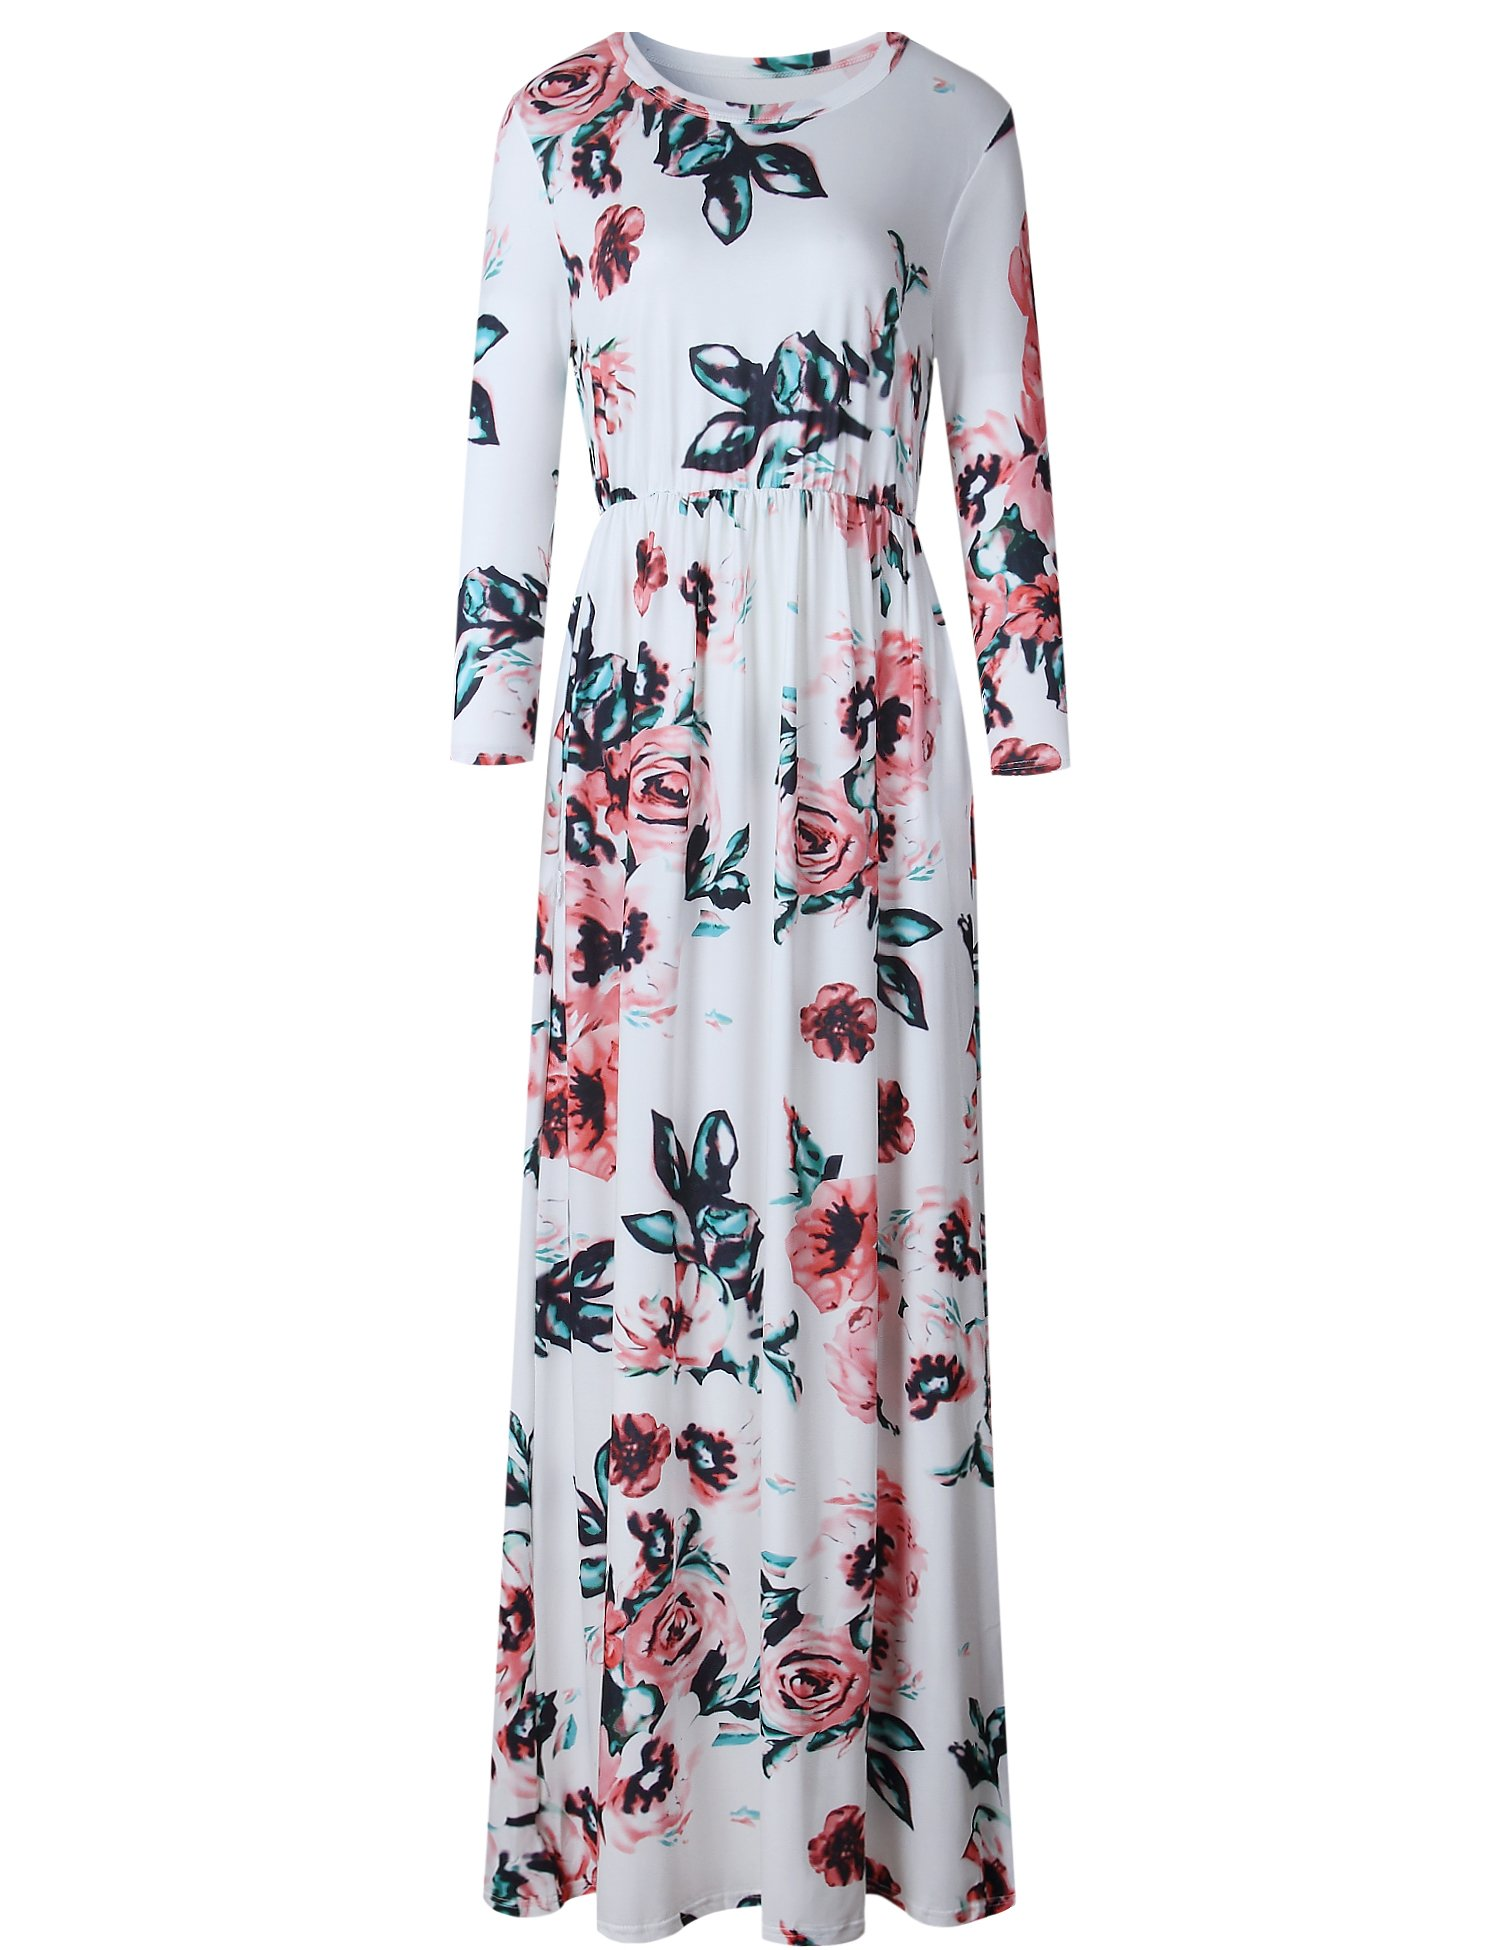 Murimia Women's Floral Print 3/4 Sleeve Empire Flower Maxi Casual Dress With Pocketed, White, Small by Murimia (Image #2)